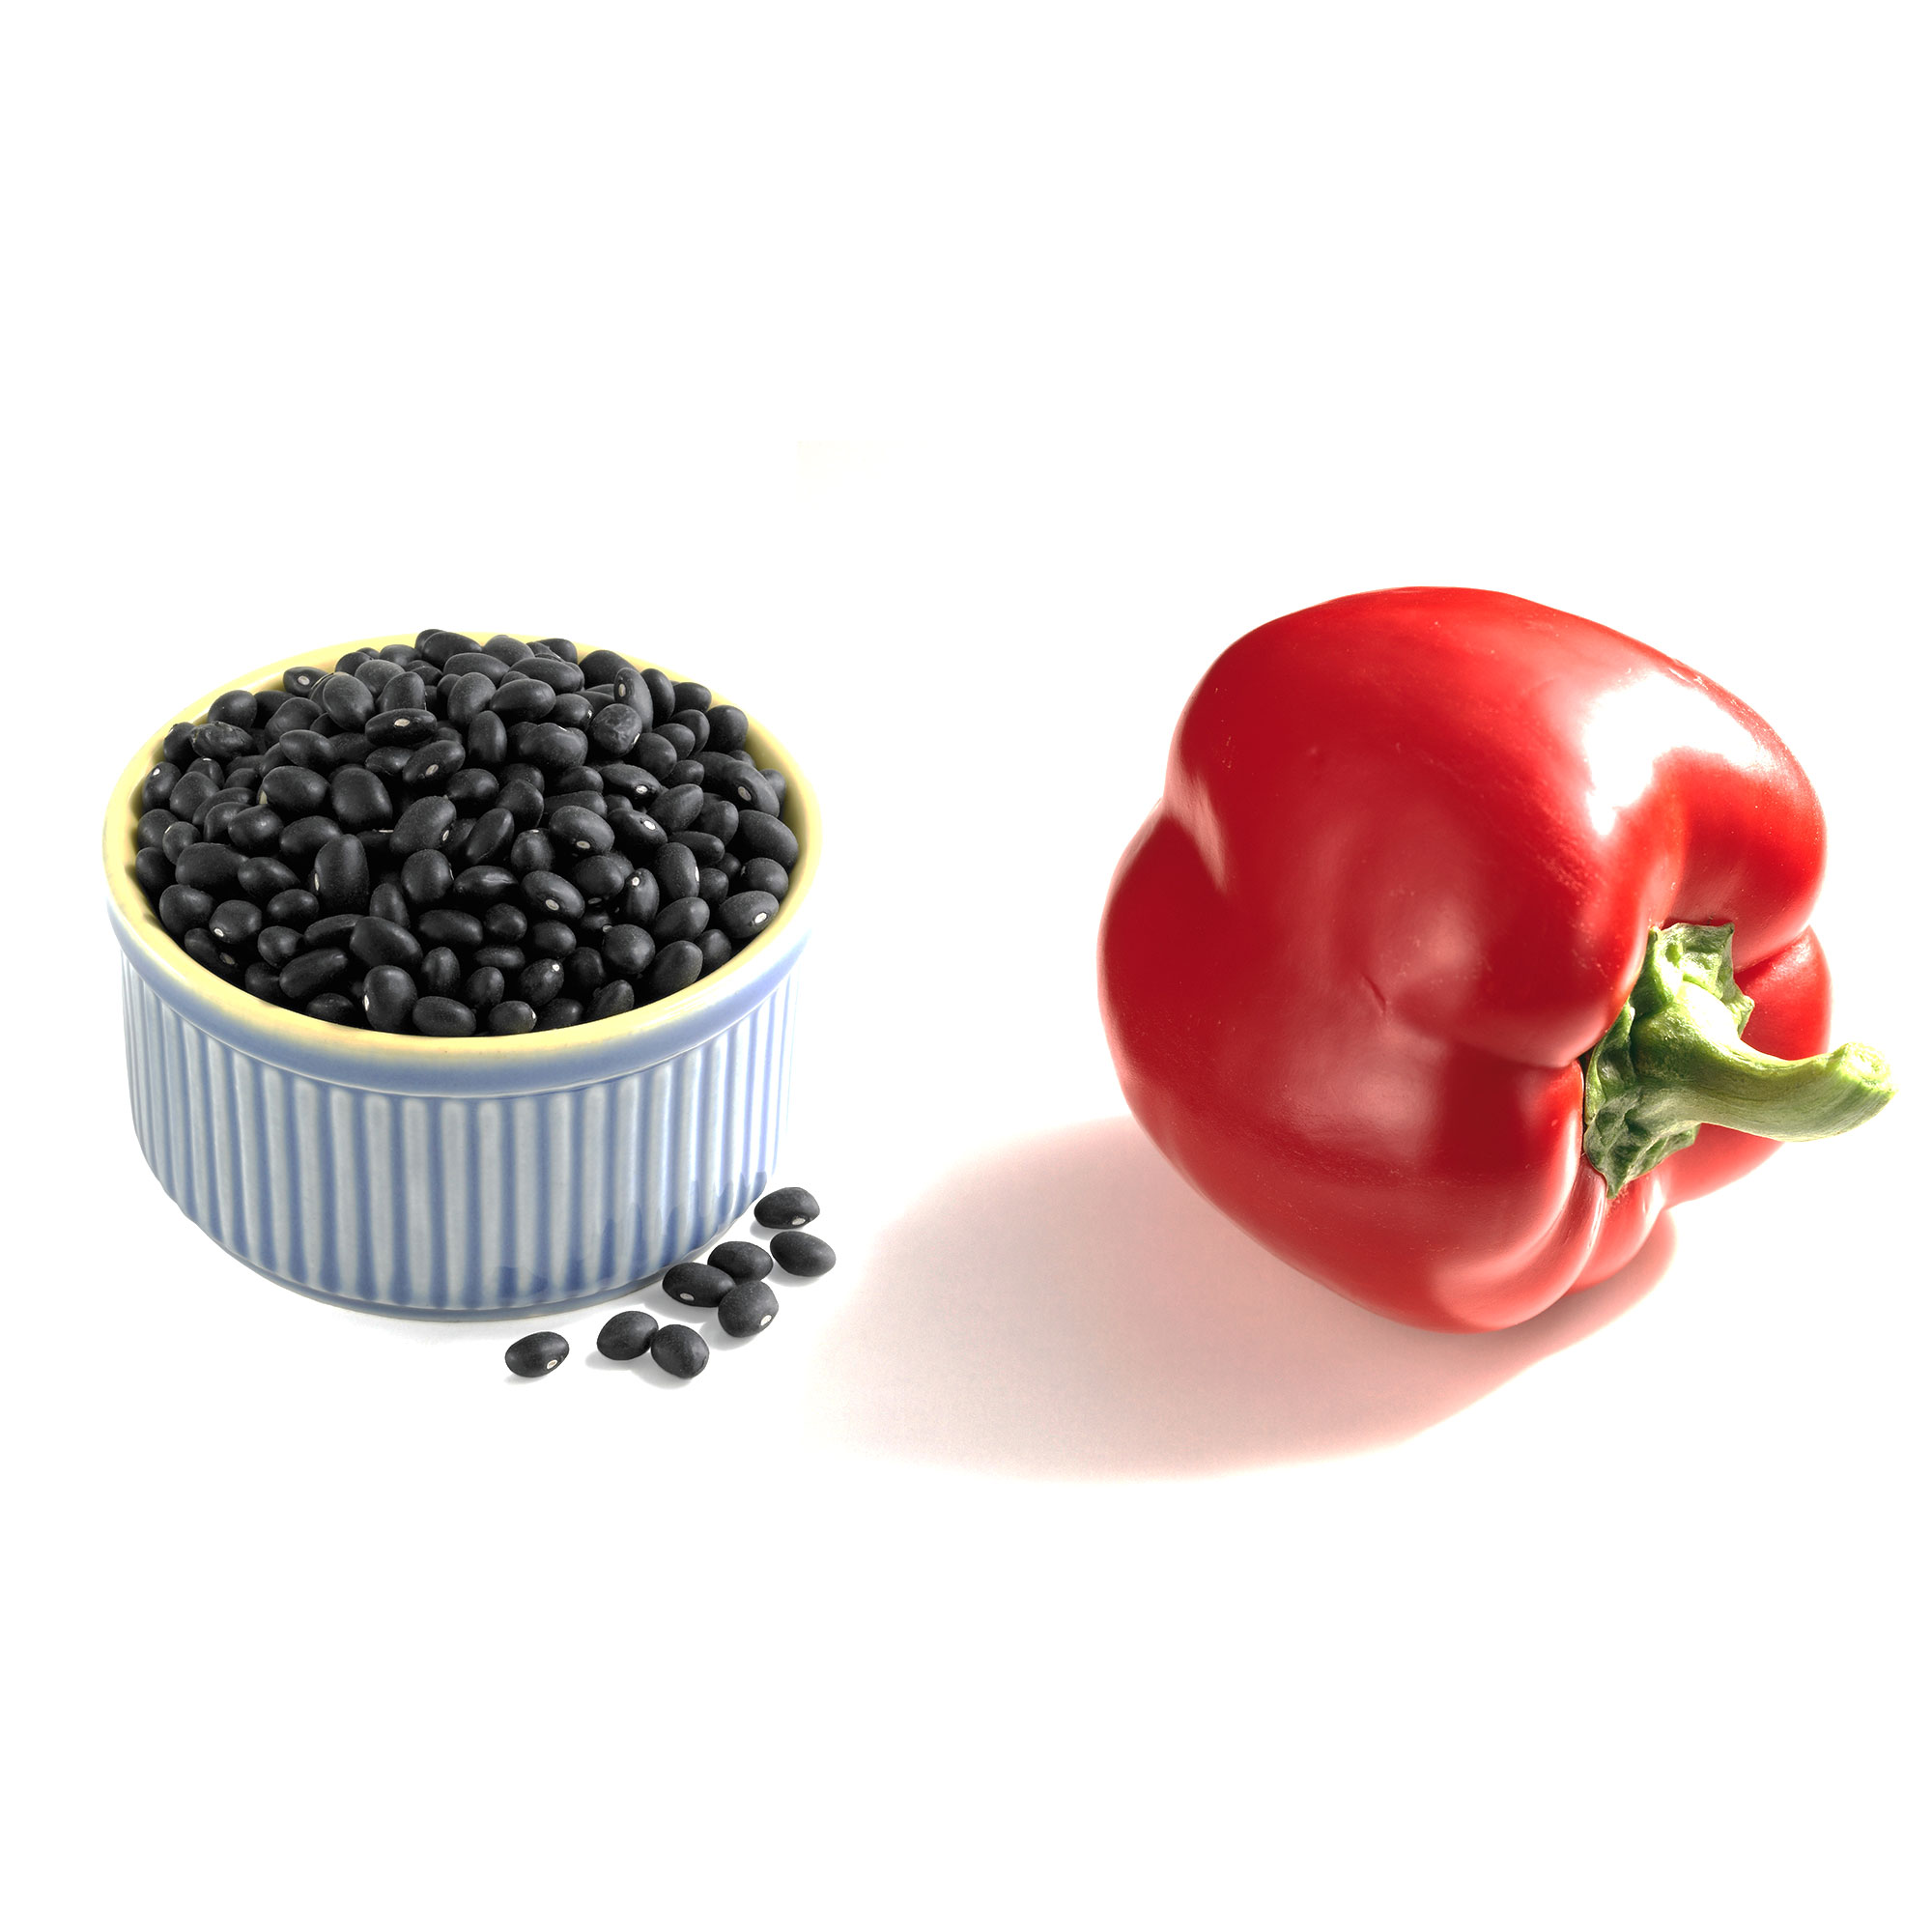 Black beans + red bell pepper